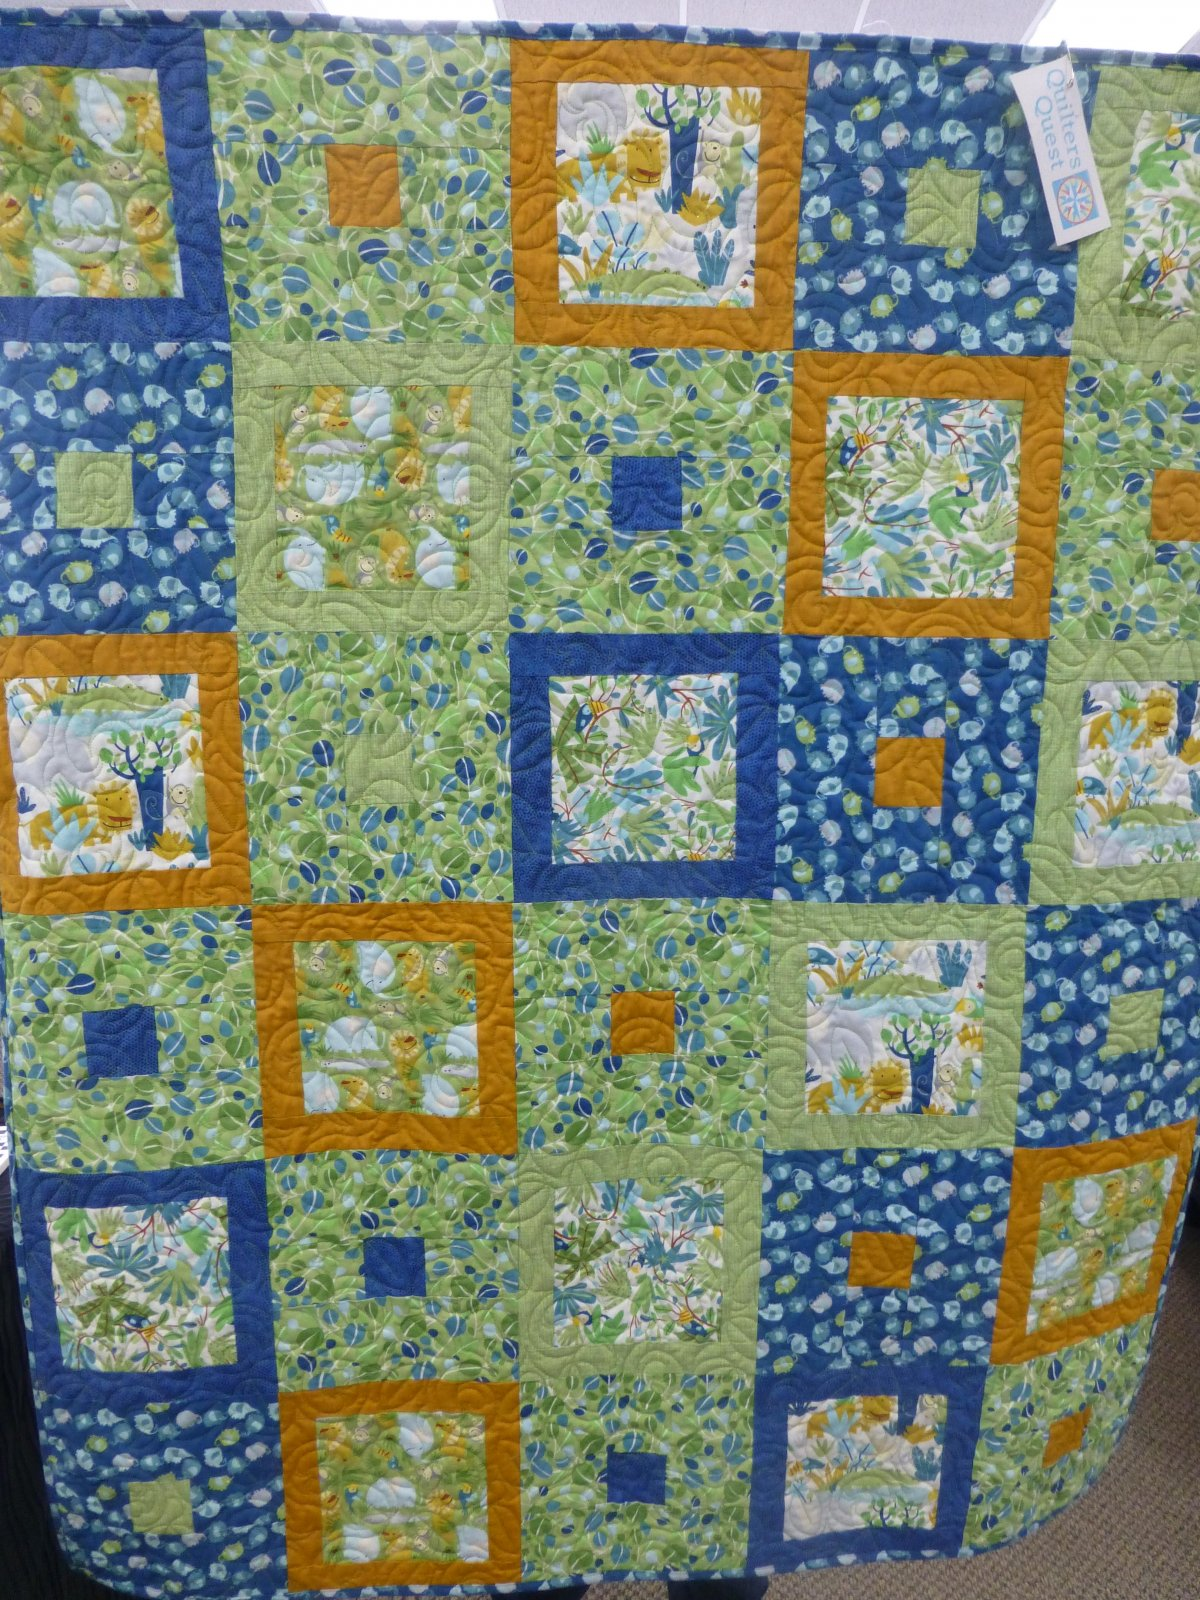 Big and Little Quilt Sample 37 x 45